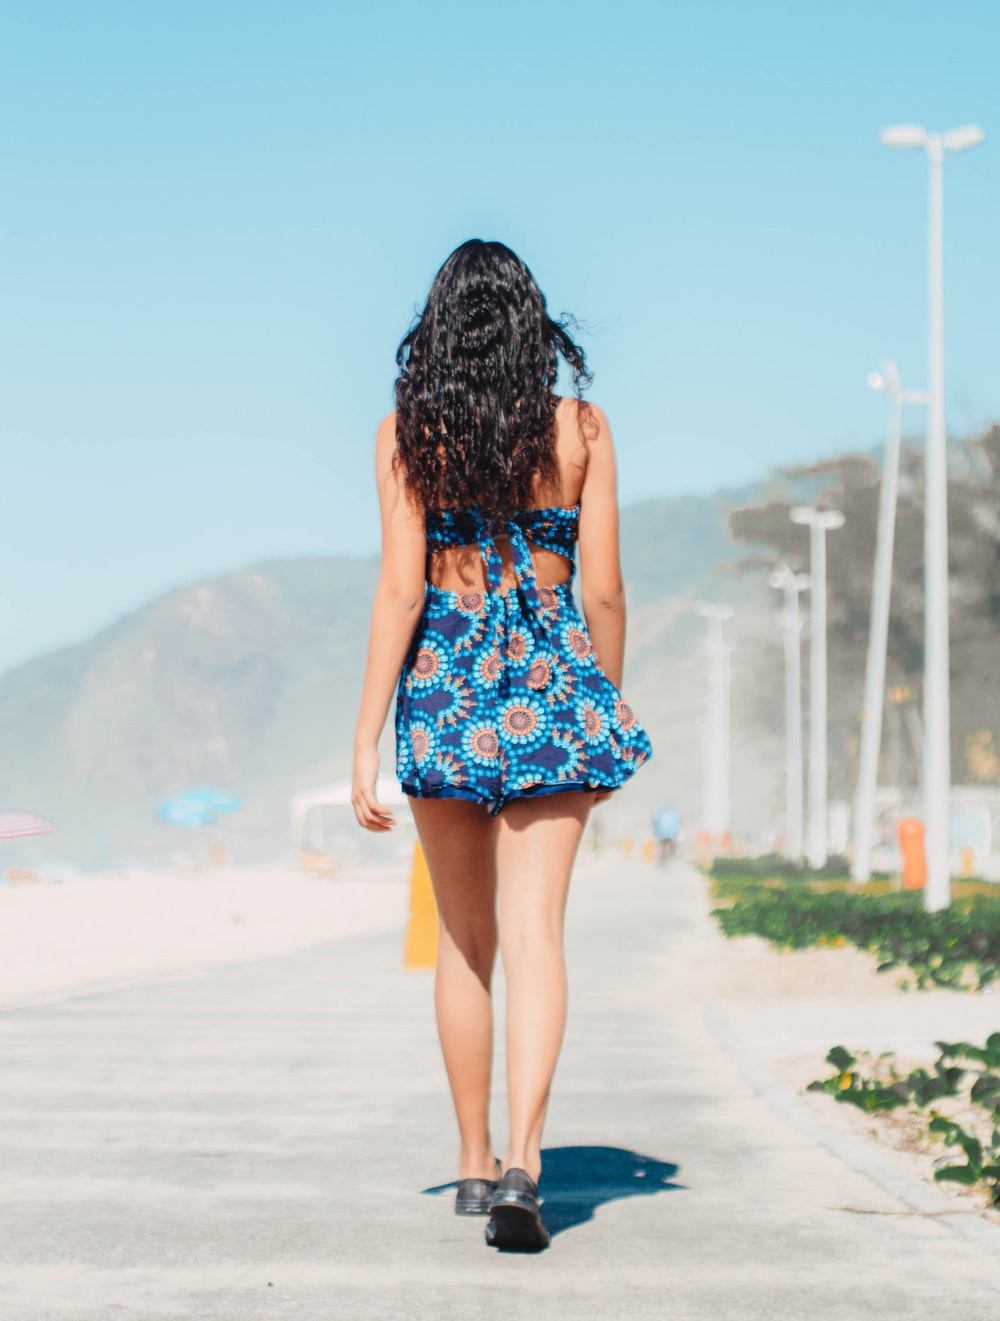 woman wearing blue and brown floral mini dress